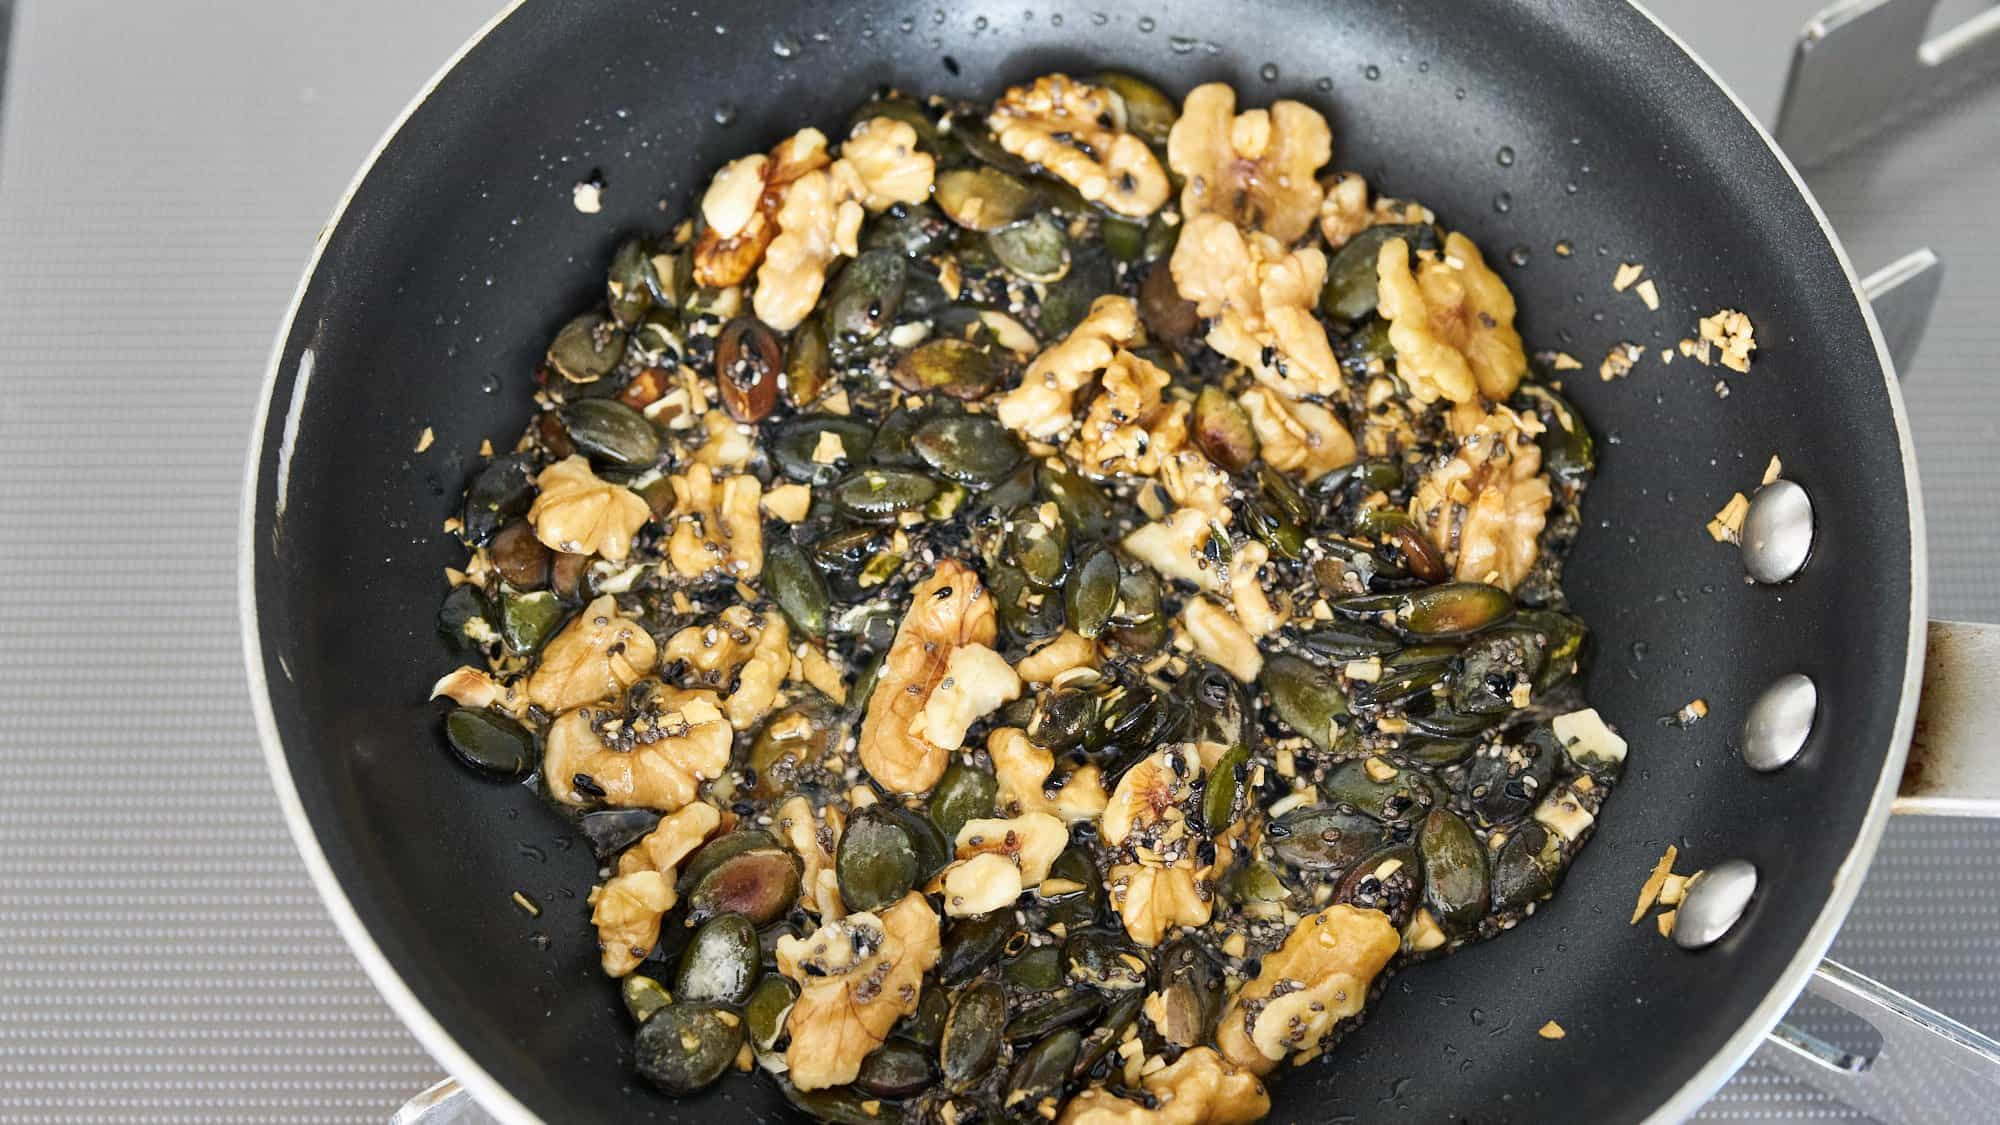 Caramelized garlic, olive oil, walnuts, pumpkin seeds, chia seeds and nigella seeds in a frying pan.